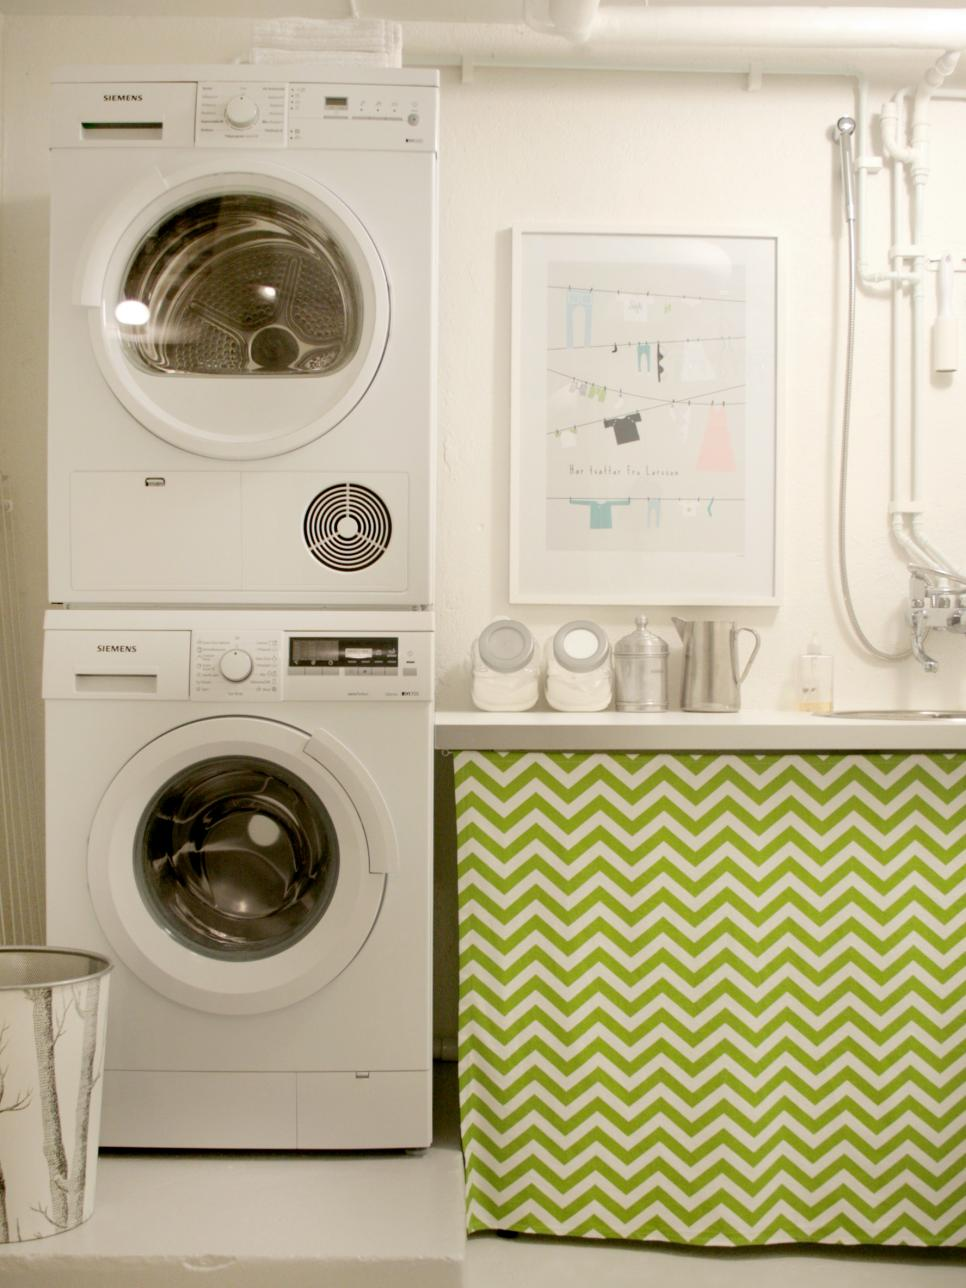 10 chic laundry room decorating ideas hgtv - Laundry Design Ideas